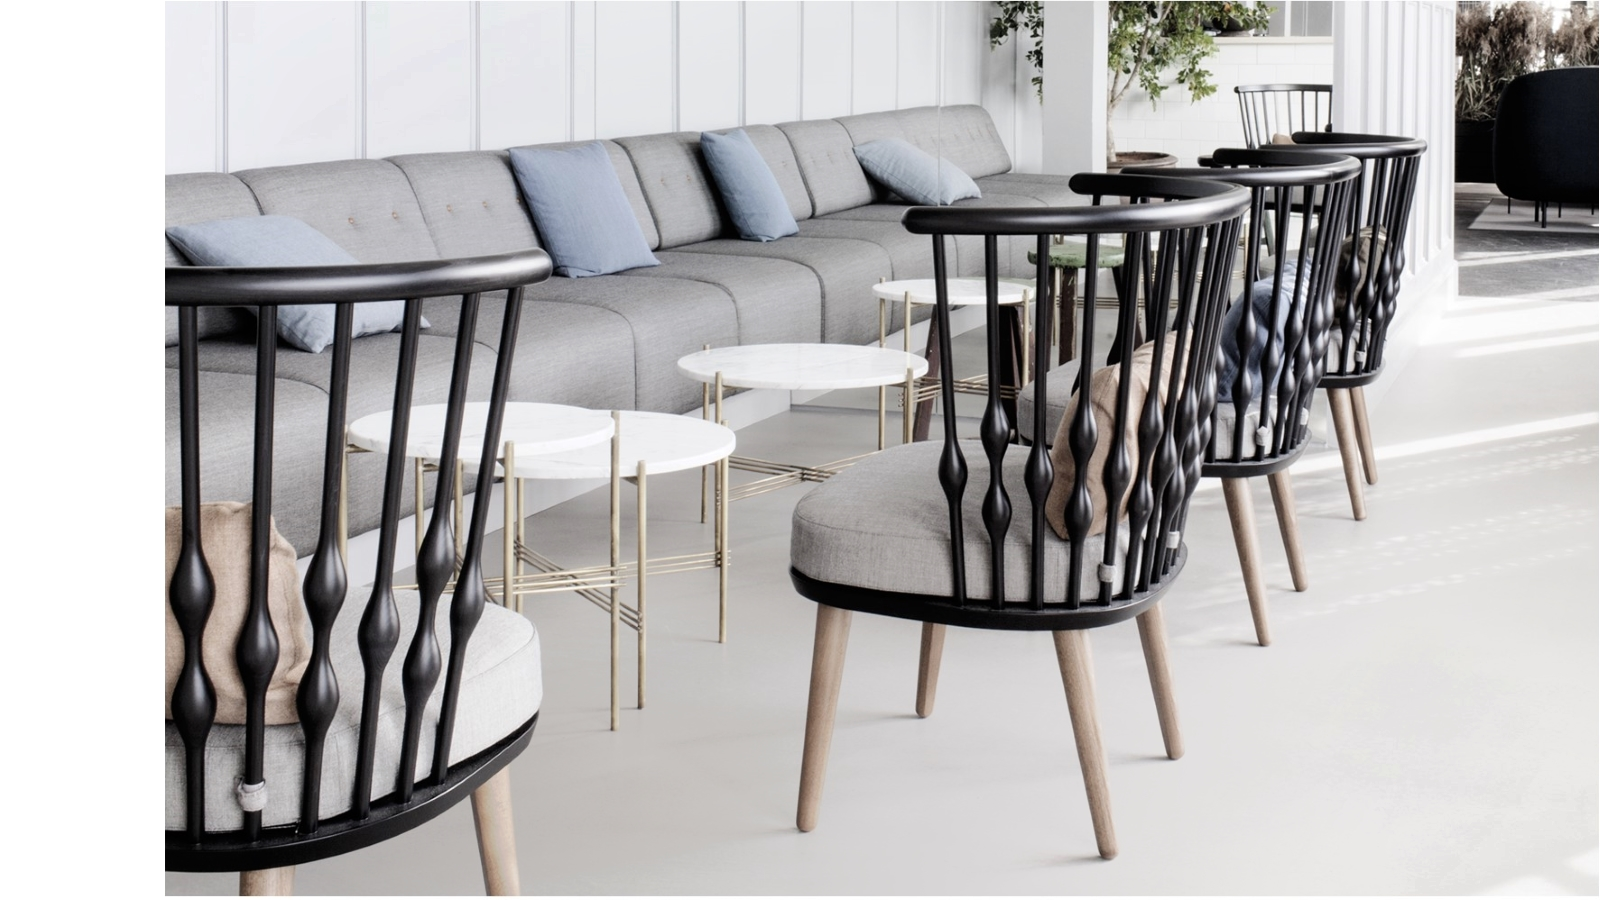 Andreu World chairs